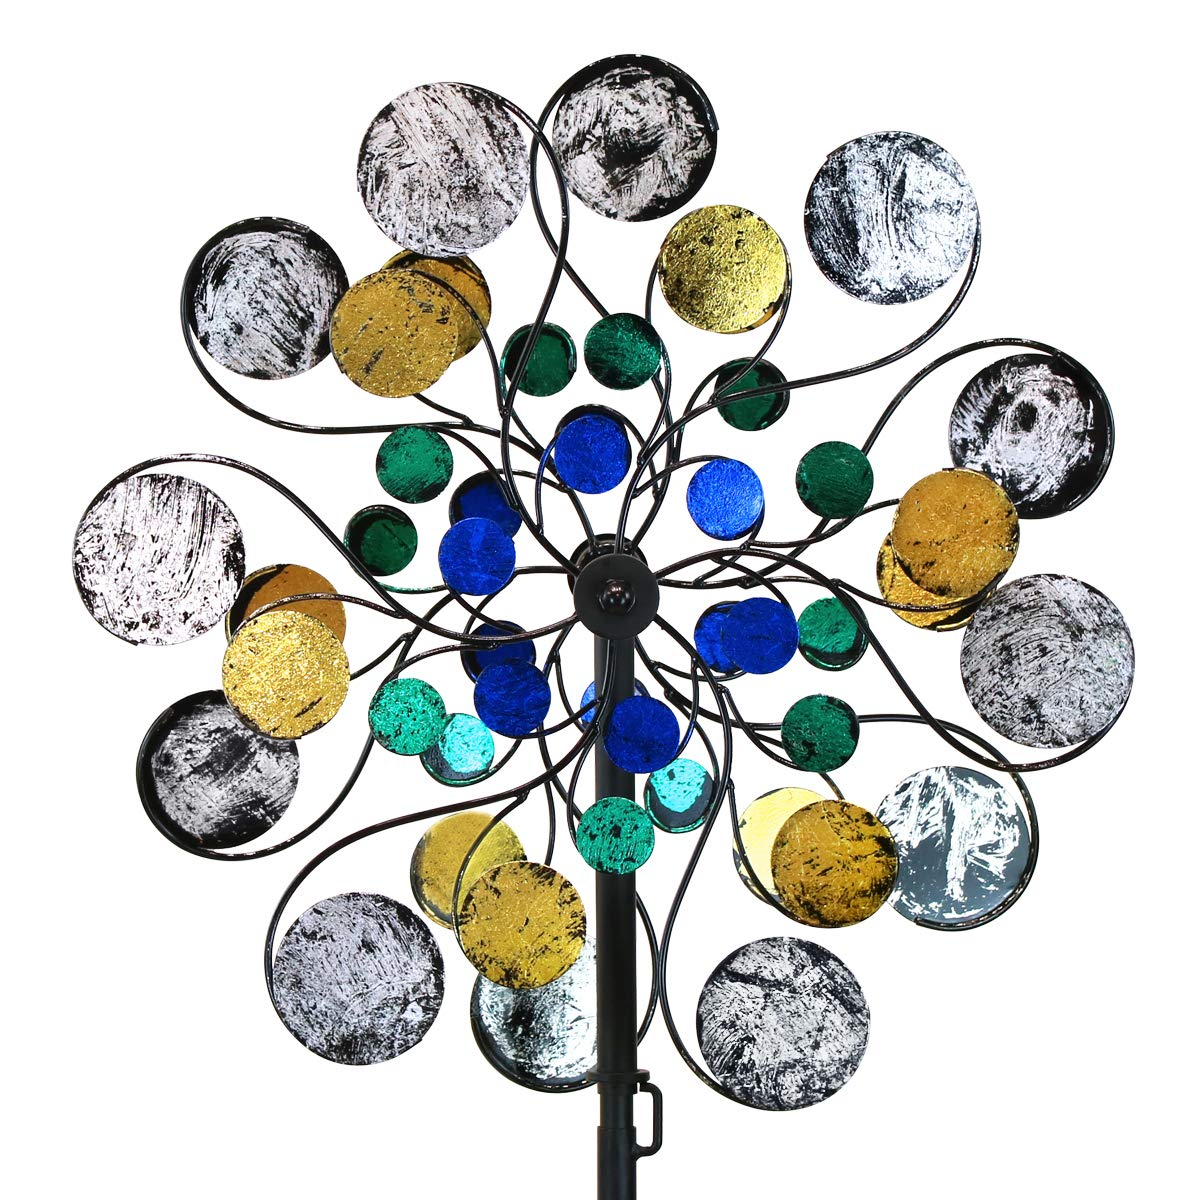 WinWindSpinner Kinetic Wind Spinners Outdoor Metal Yard Spinner with Gardening Decorations with Dual Direction Decorative Lawn Ornament Wind Mills by WinWindSpinner